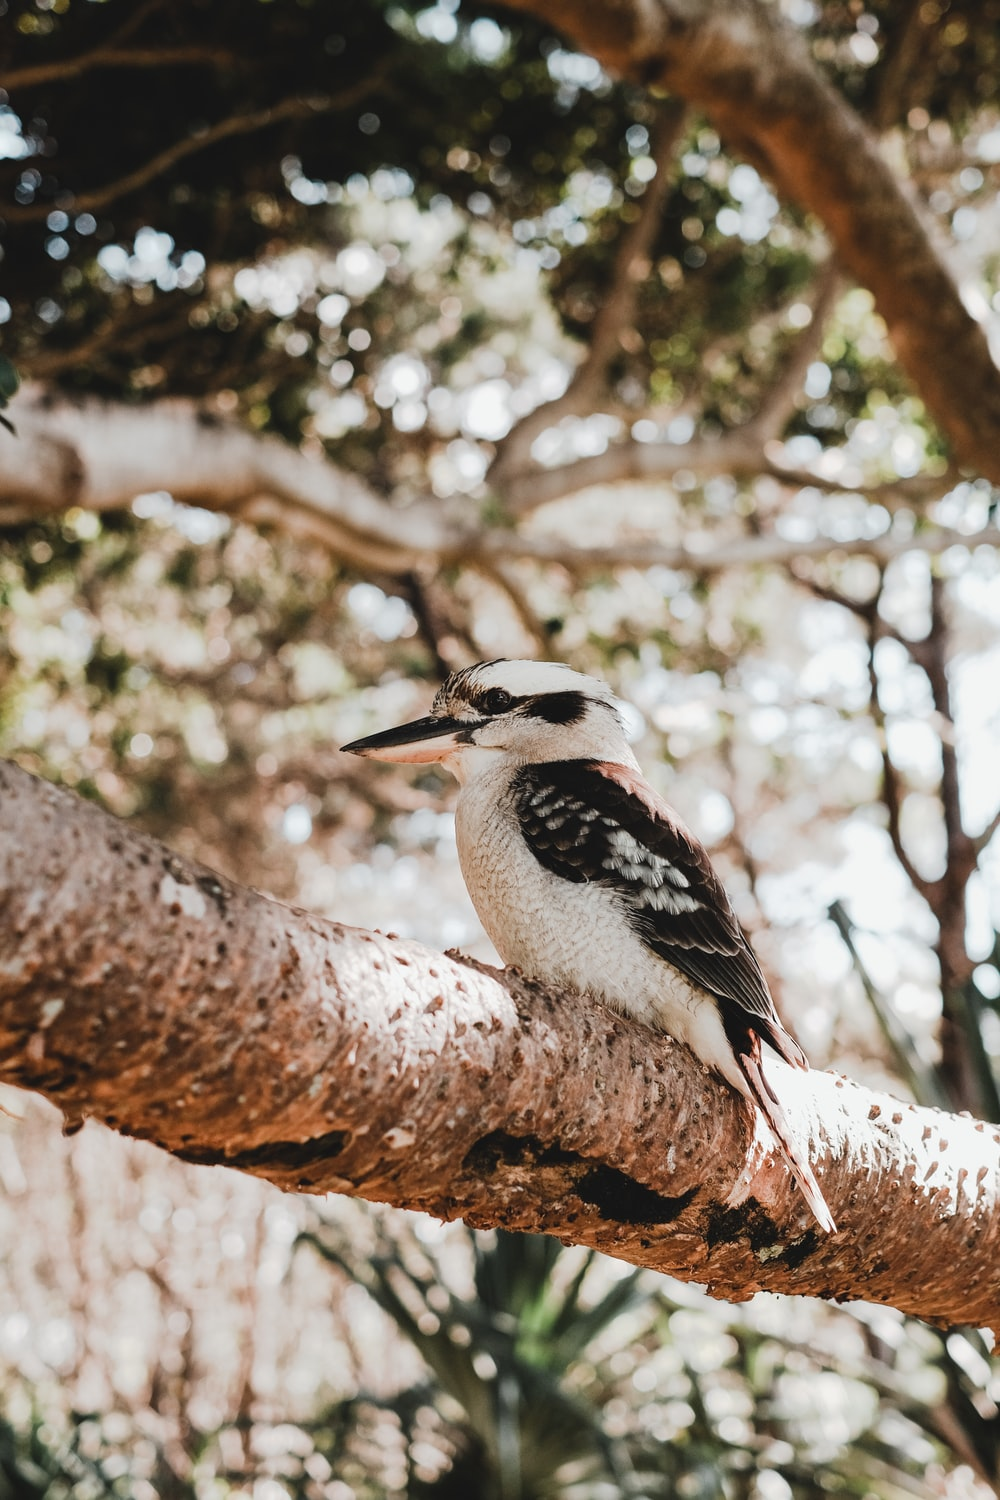 black and white bird on brown tree branch during daytime